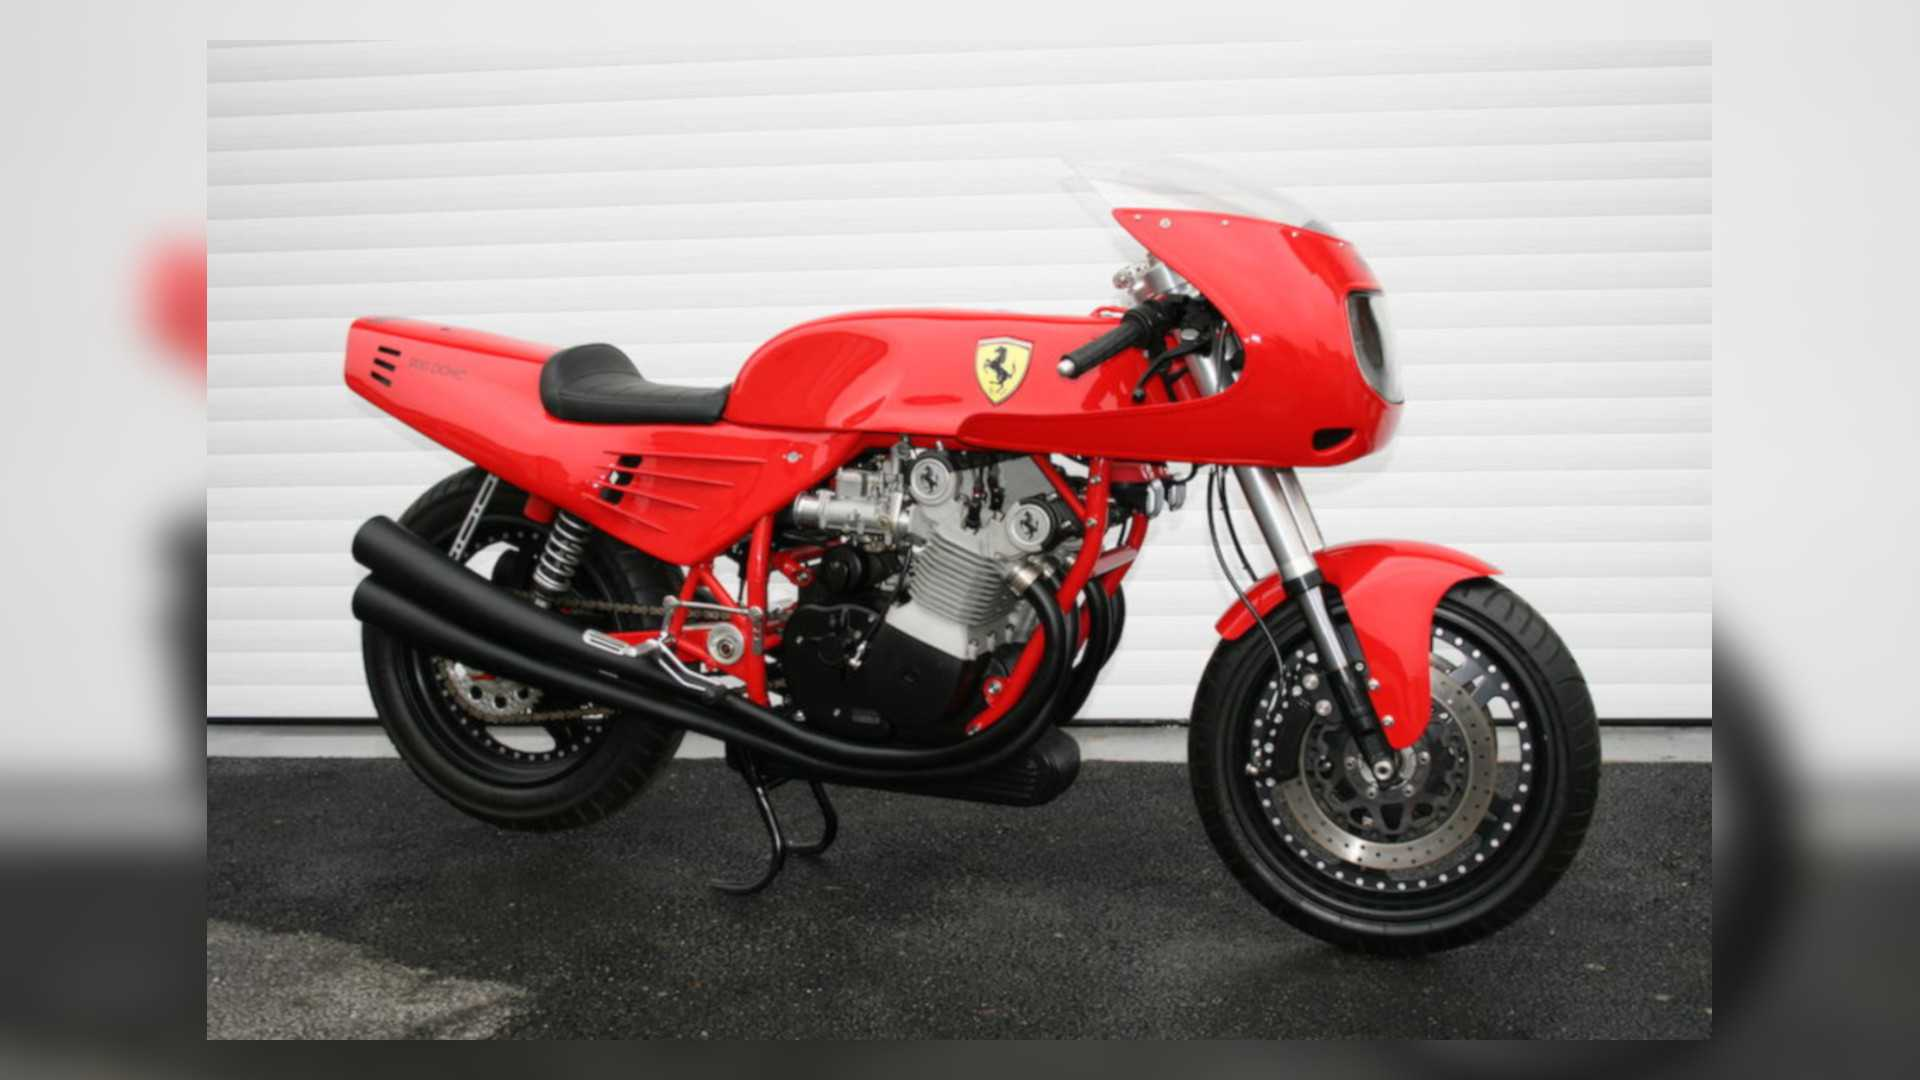 That Time Someone Made A Ferrari Motorcycle